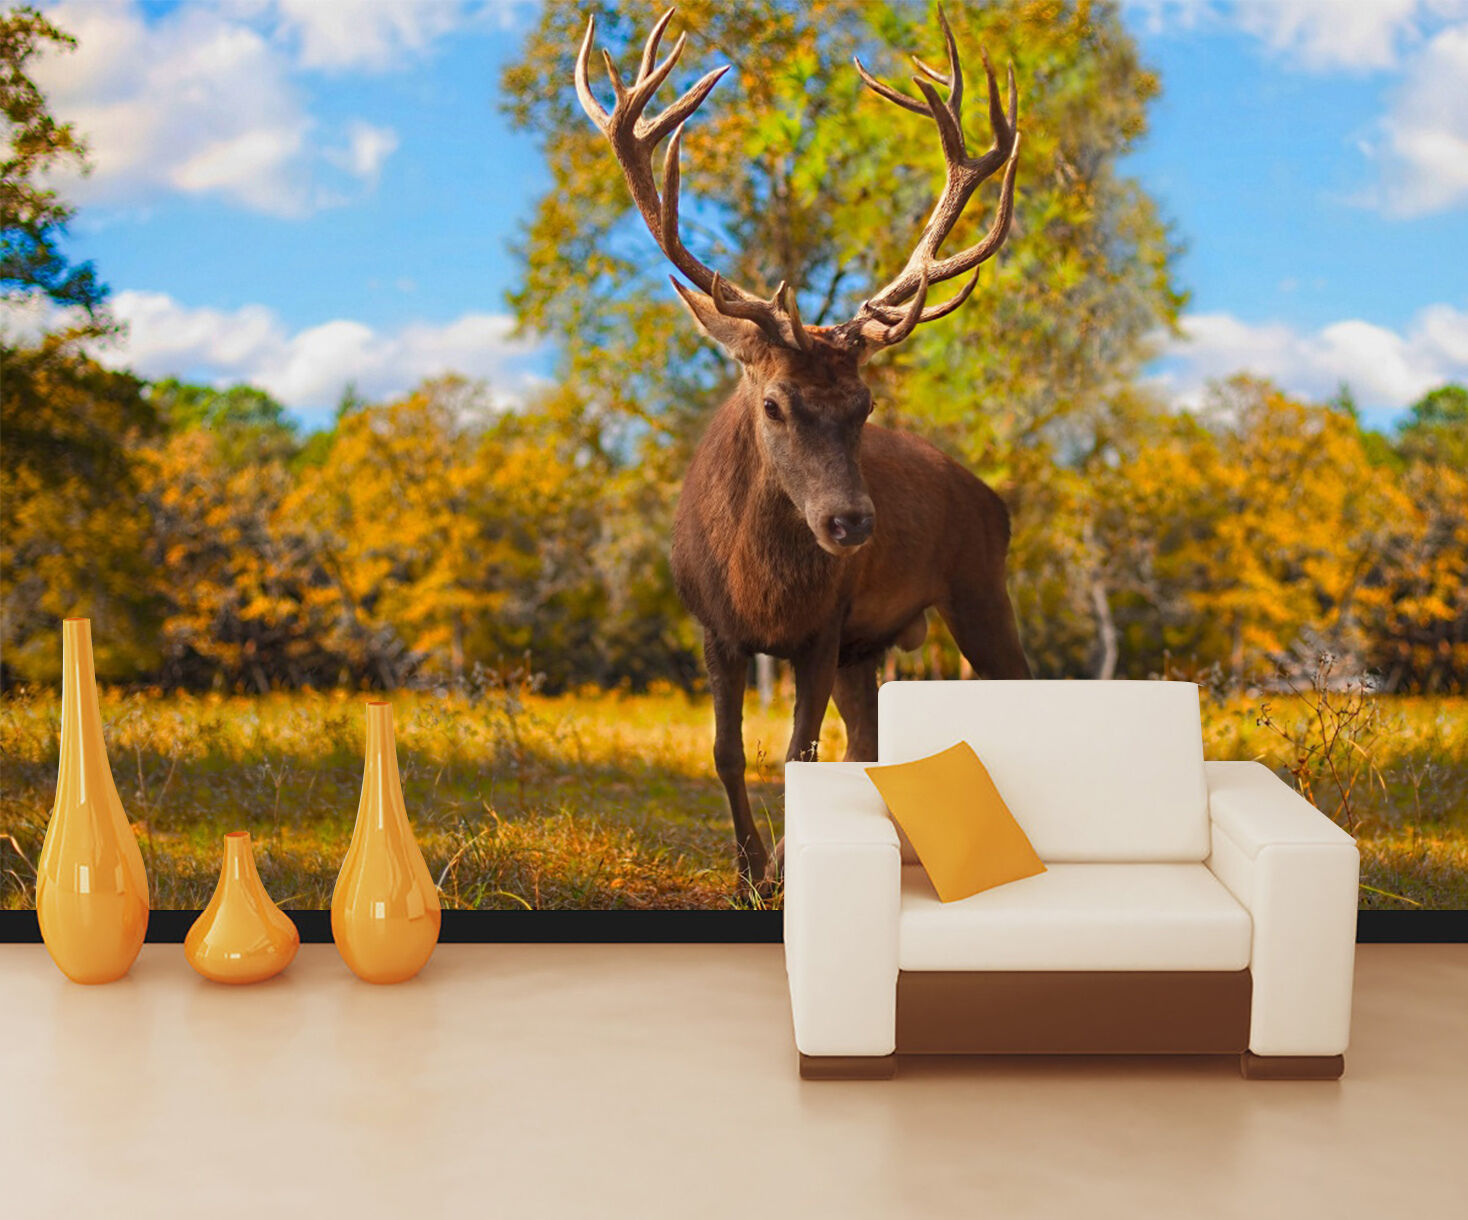 3D Forest Deer 664 Wall Paper wall Print Decal Wall Deco Indoor wall Mural